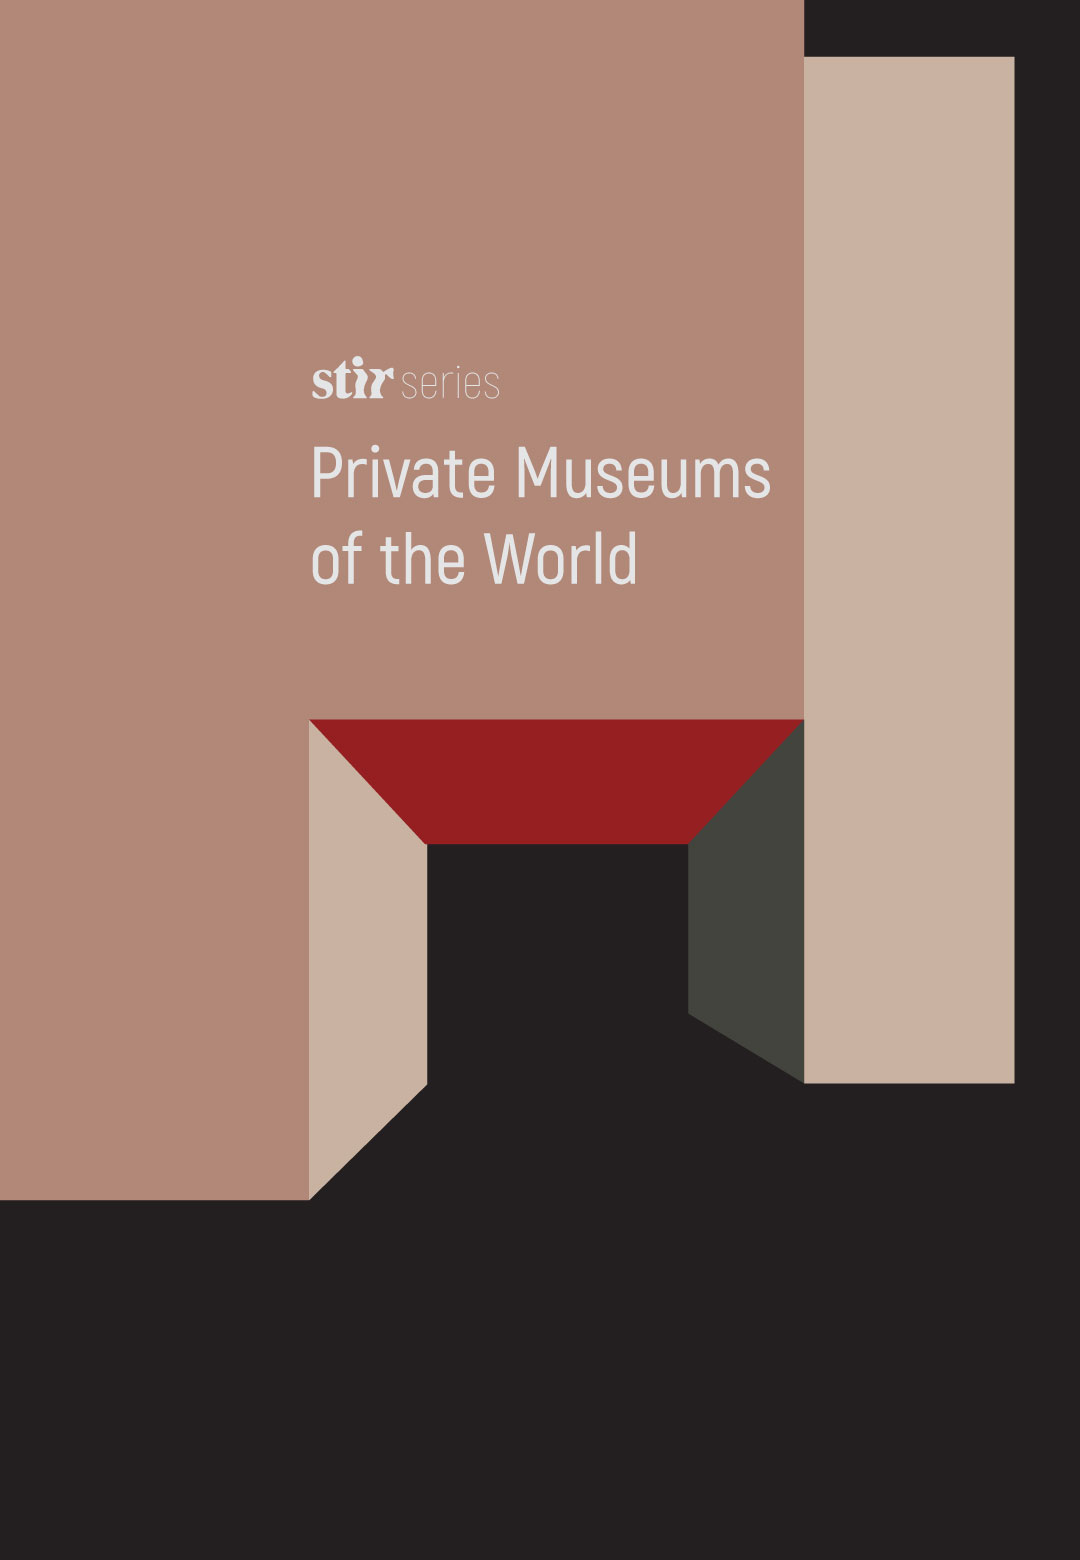 Private Museums of the World – specially curated series by STIR | Nadzena Siganporia | STIRworld